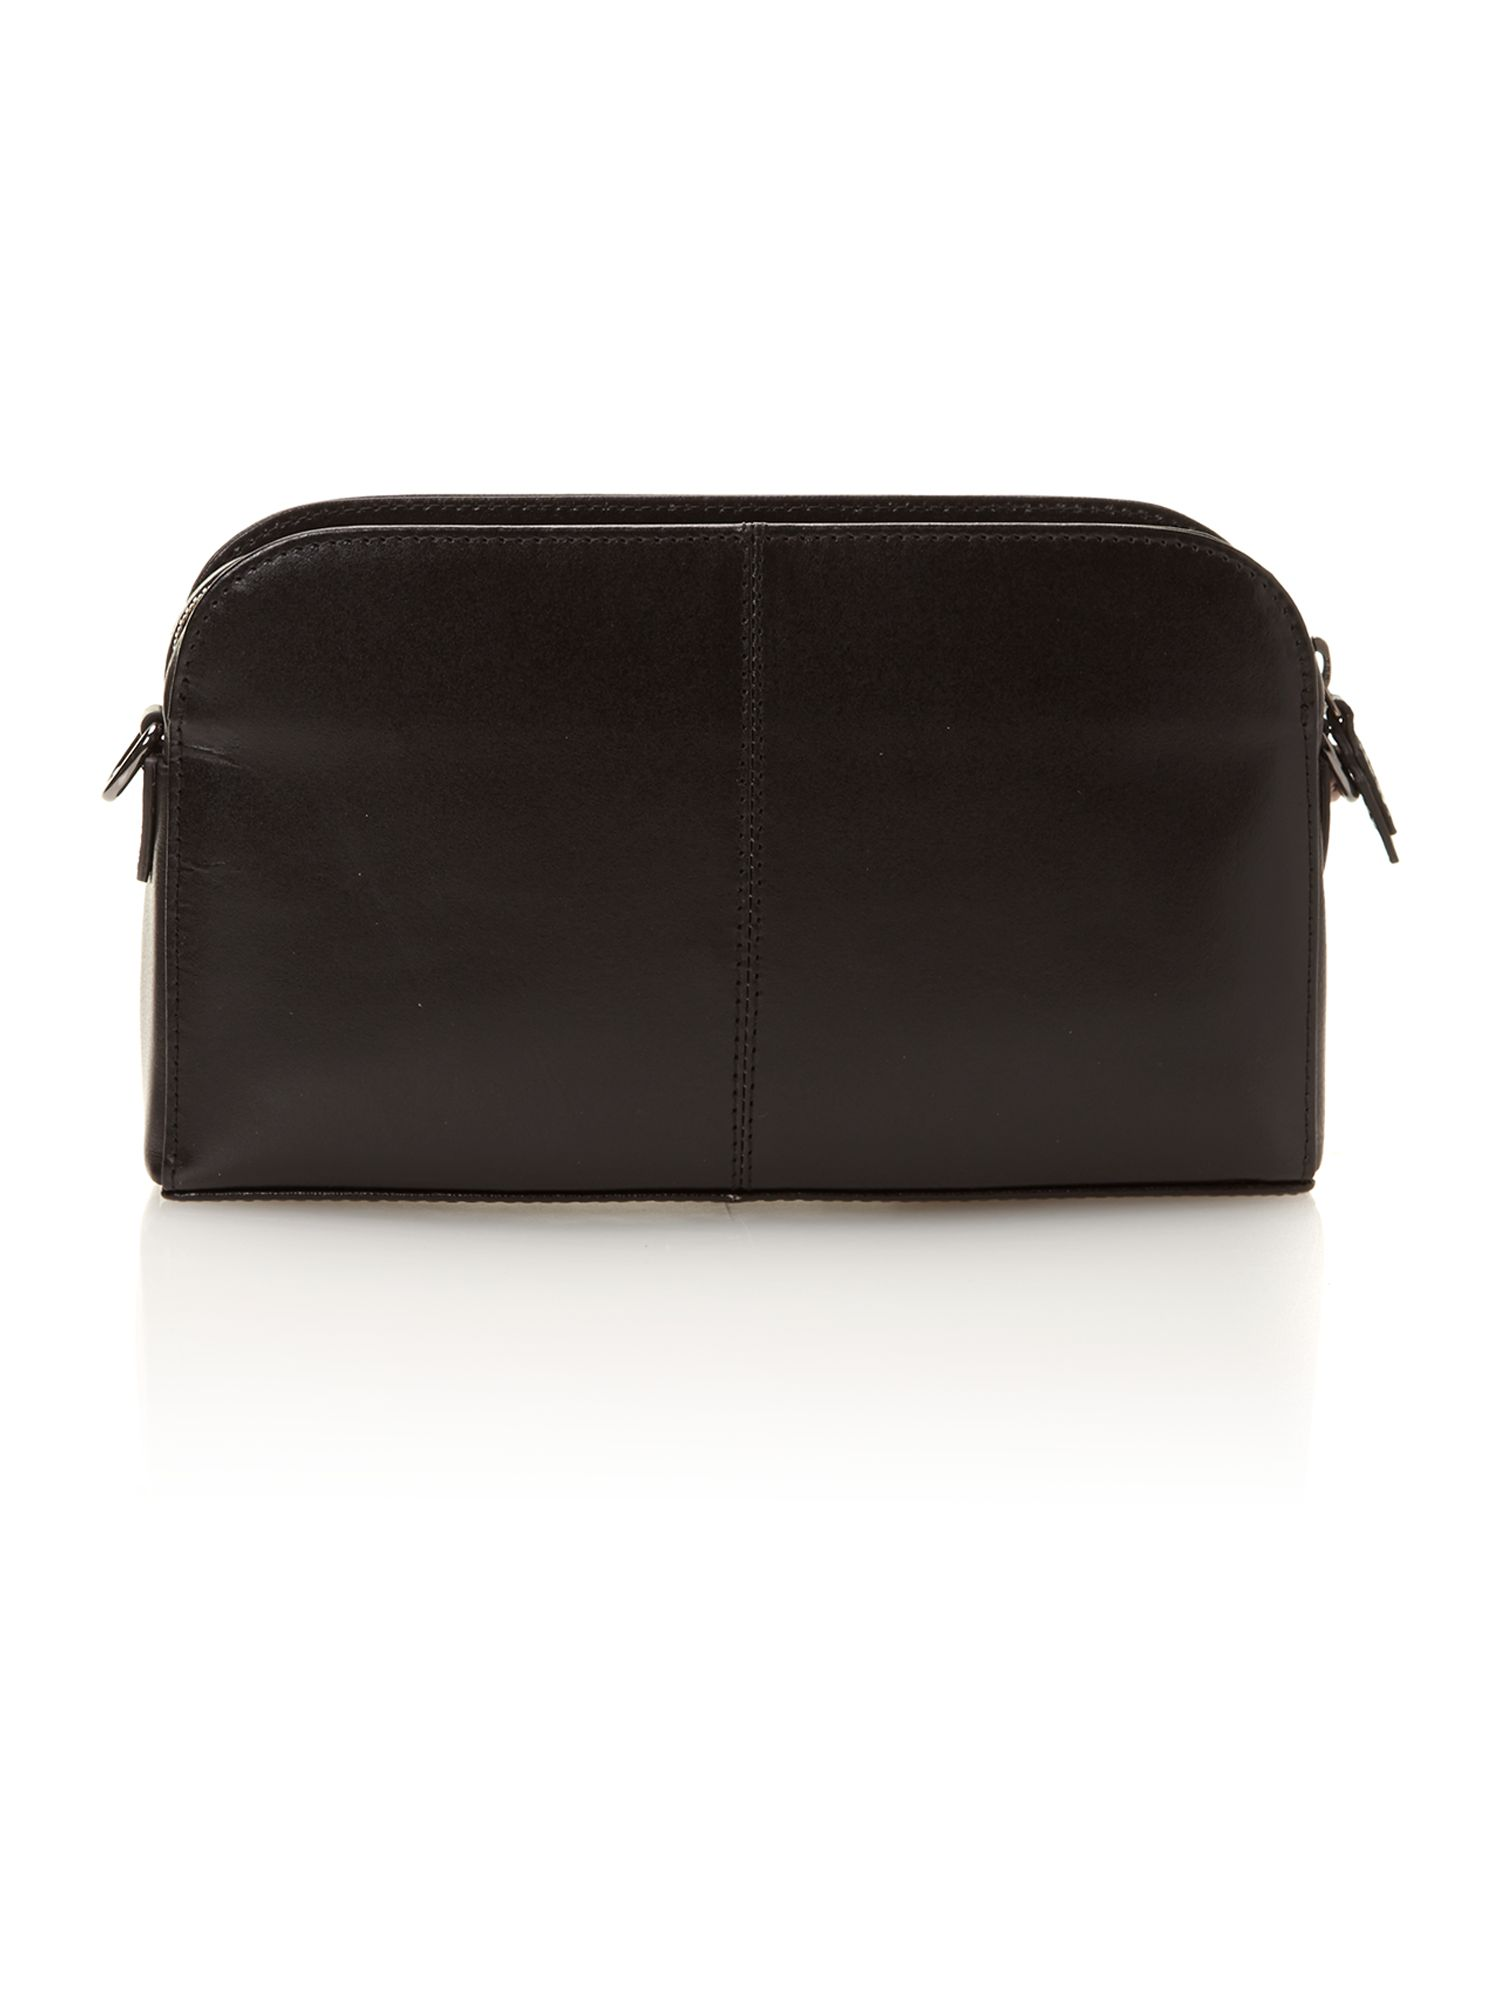 Aldgate black mini shoulder bag